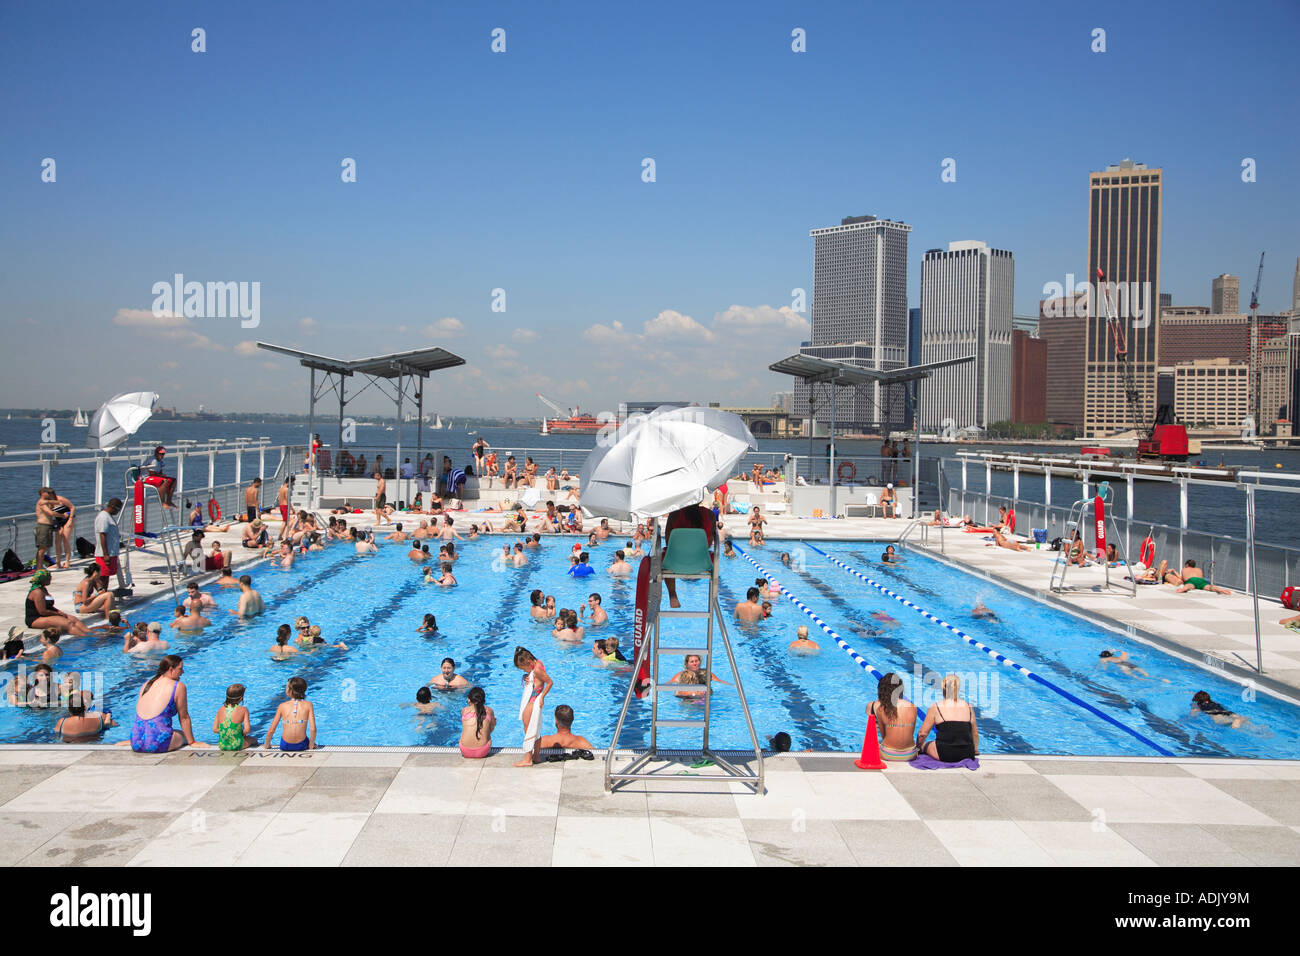 floating pool lady barge brooklyn bridge park beach with view of stock photo royalty free image